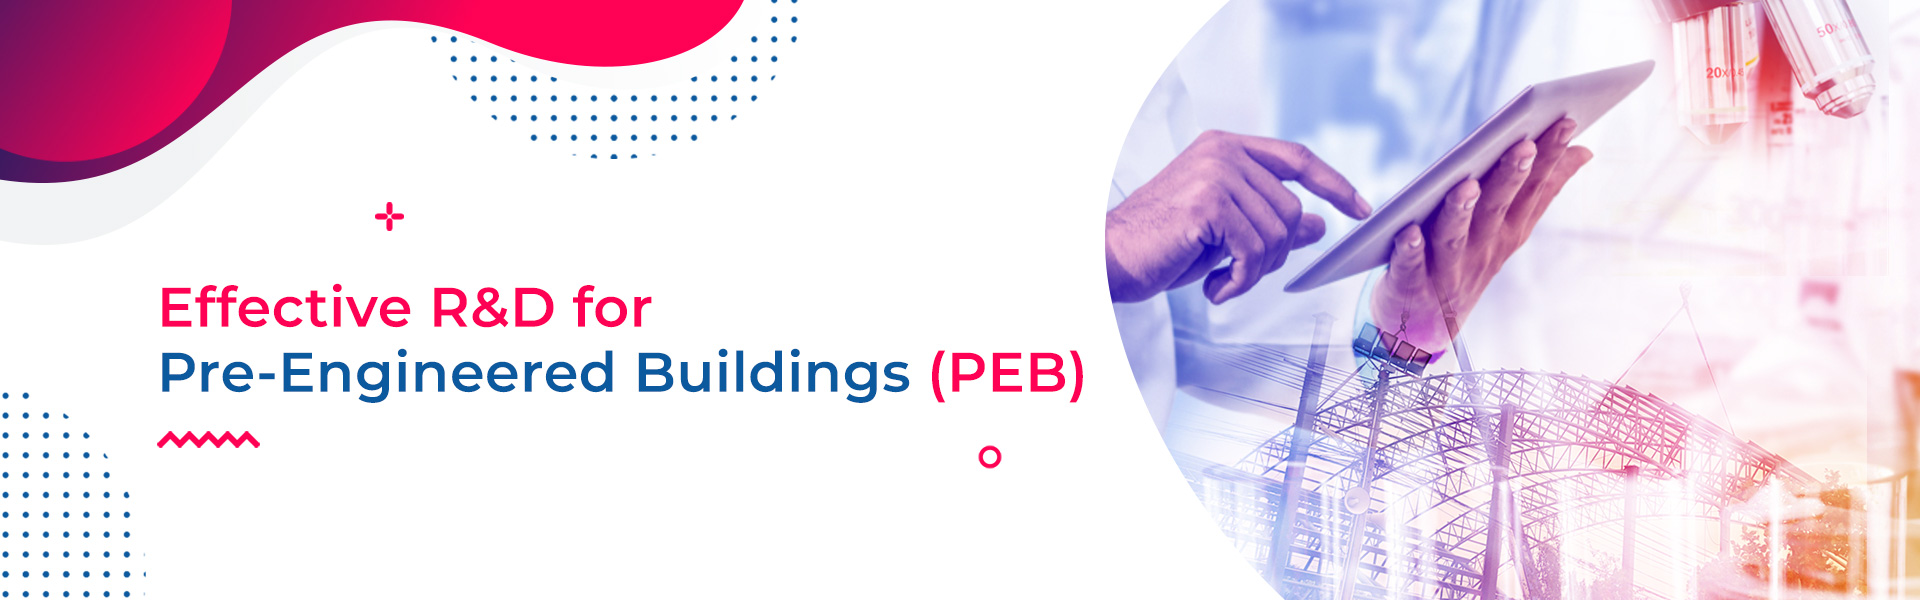 Effective R&D for Pre-Engineered Buildings (PEB)